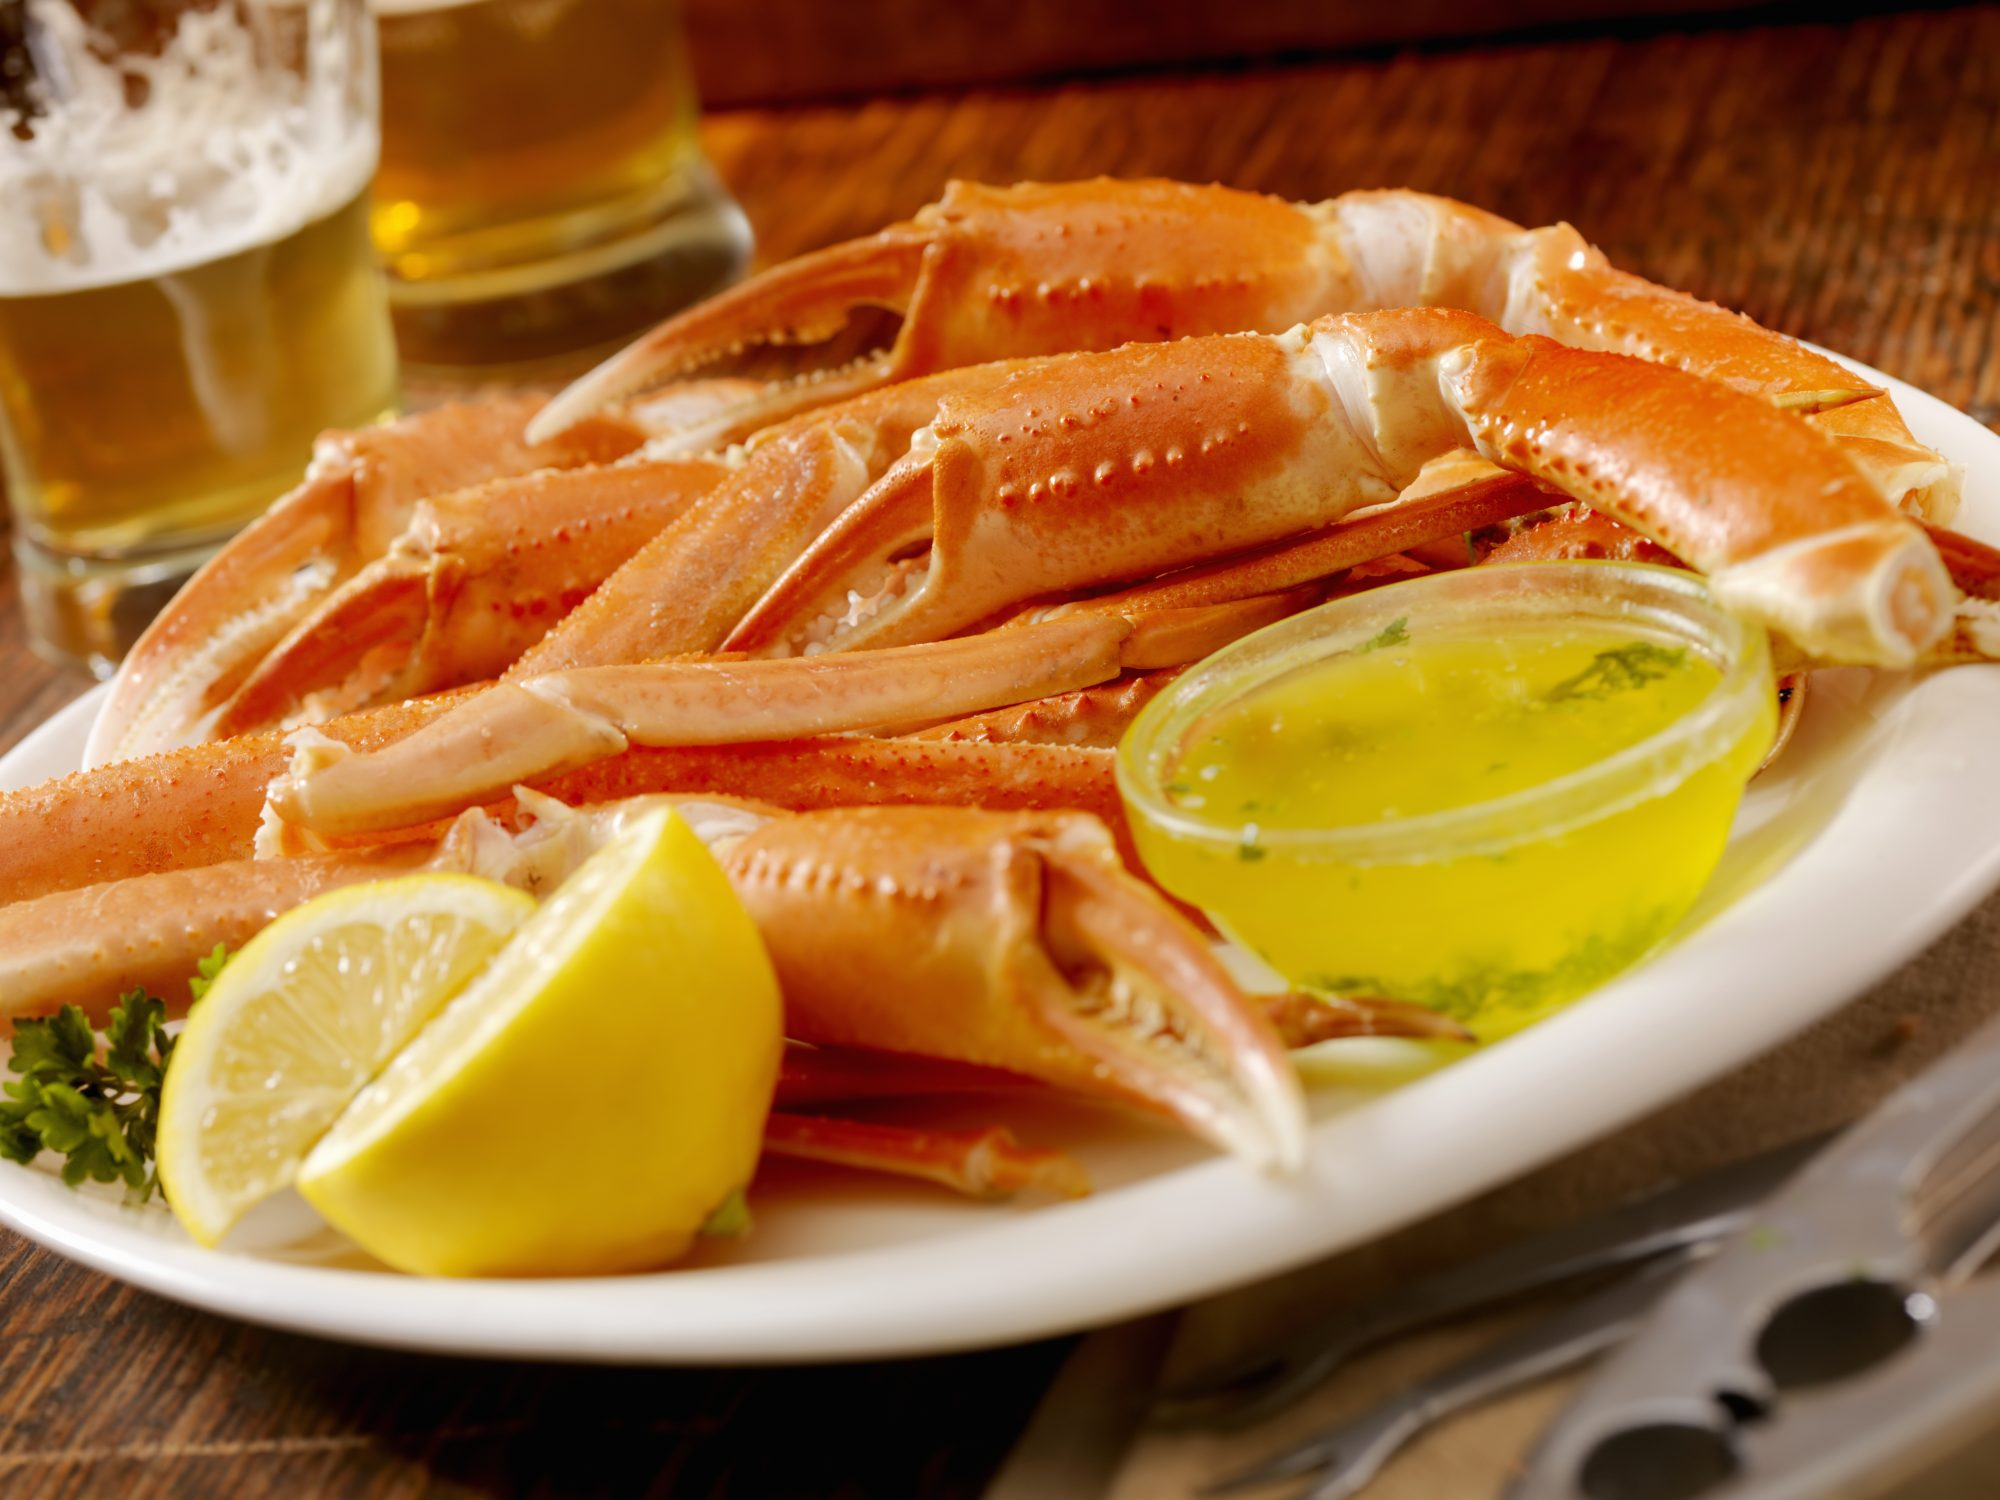 Crab legs with butter and lemon